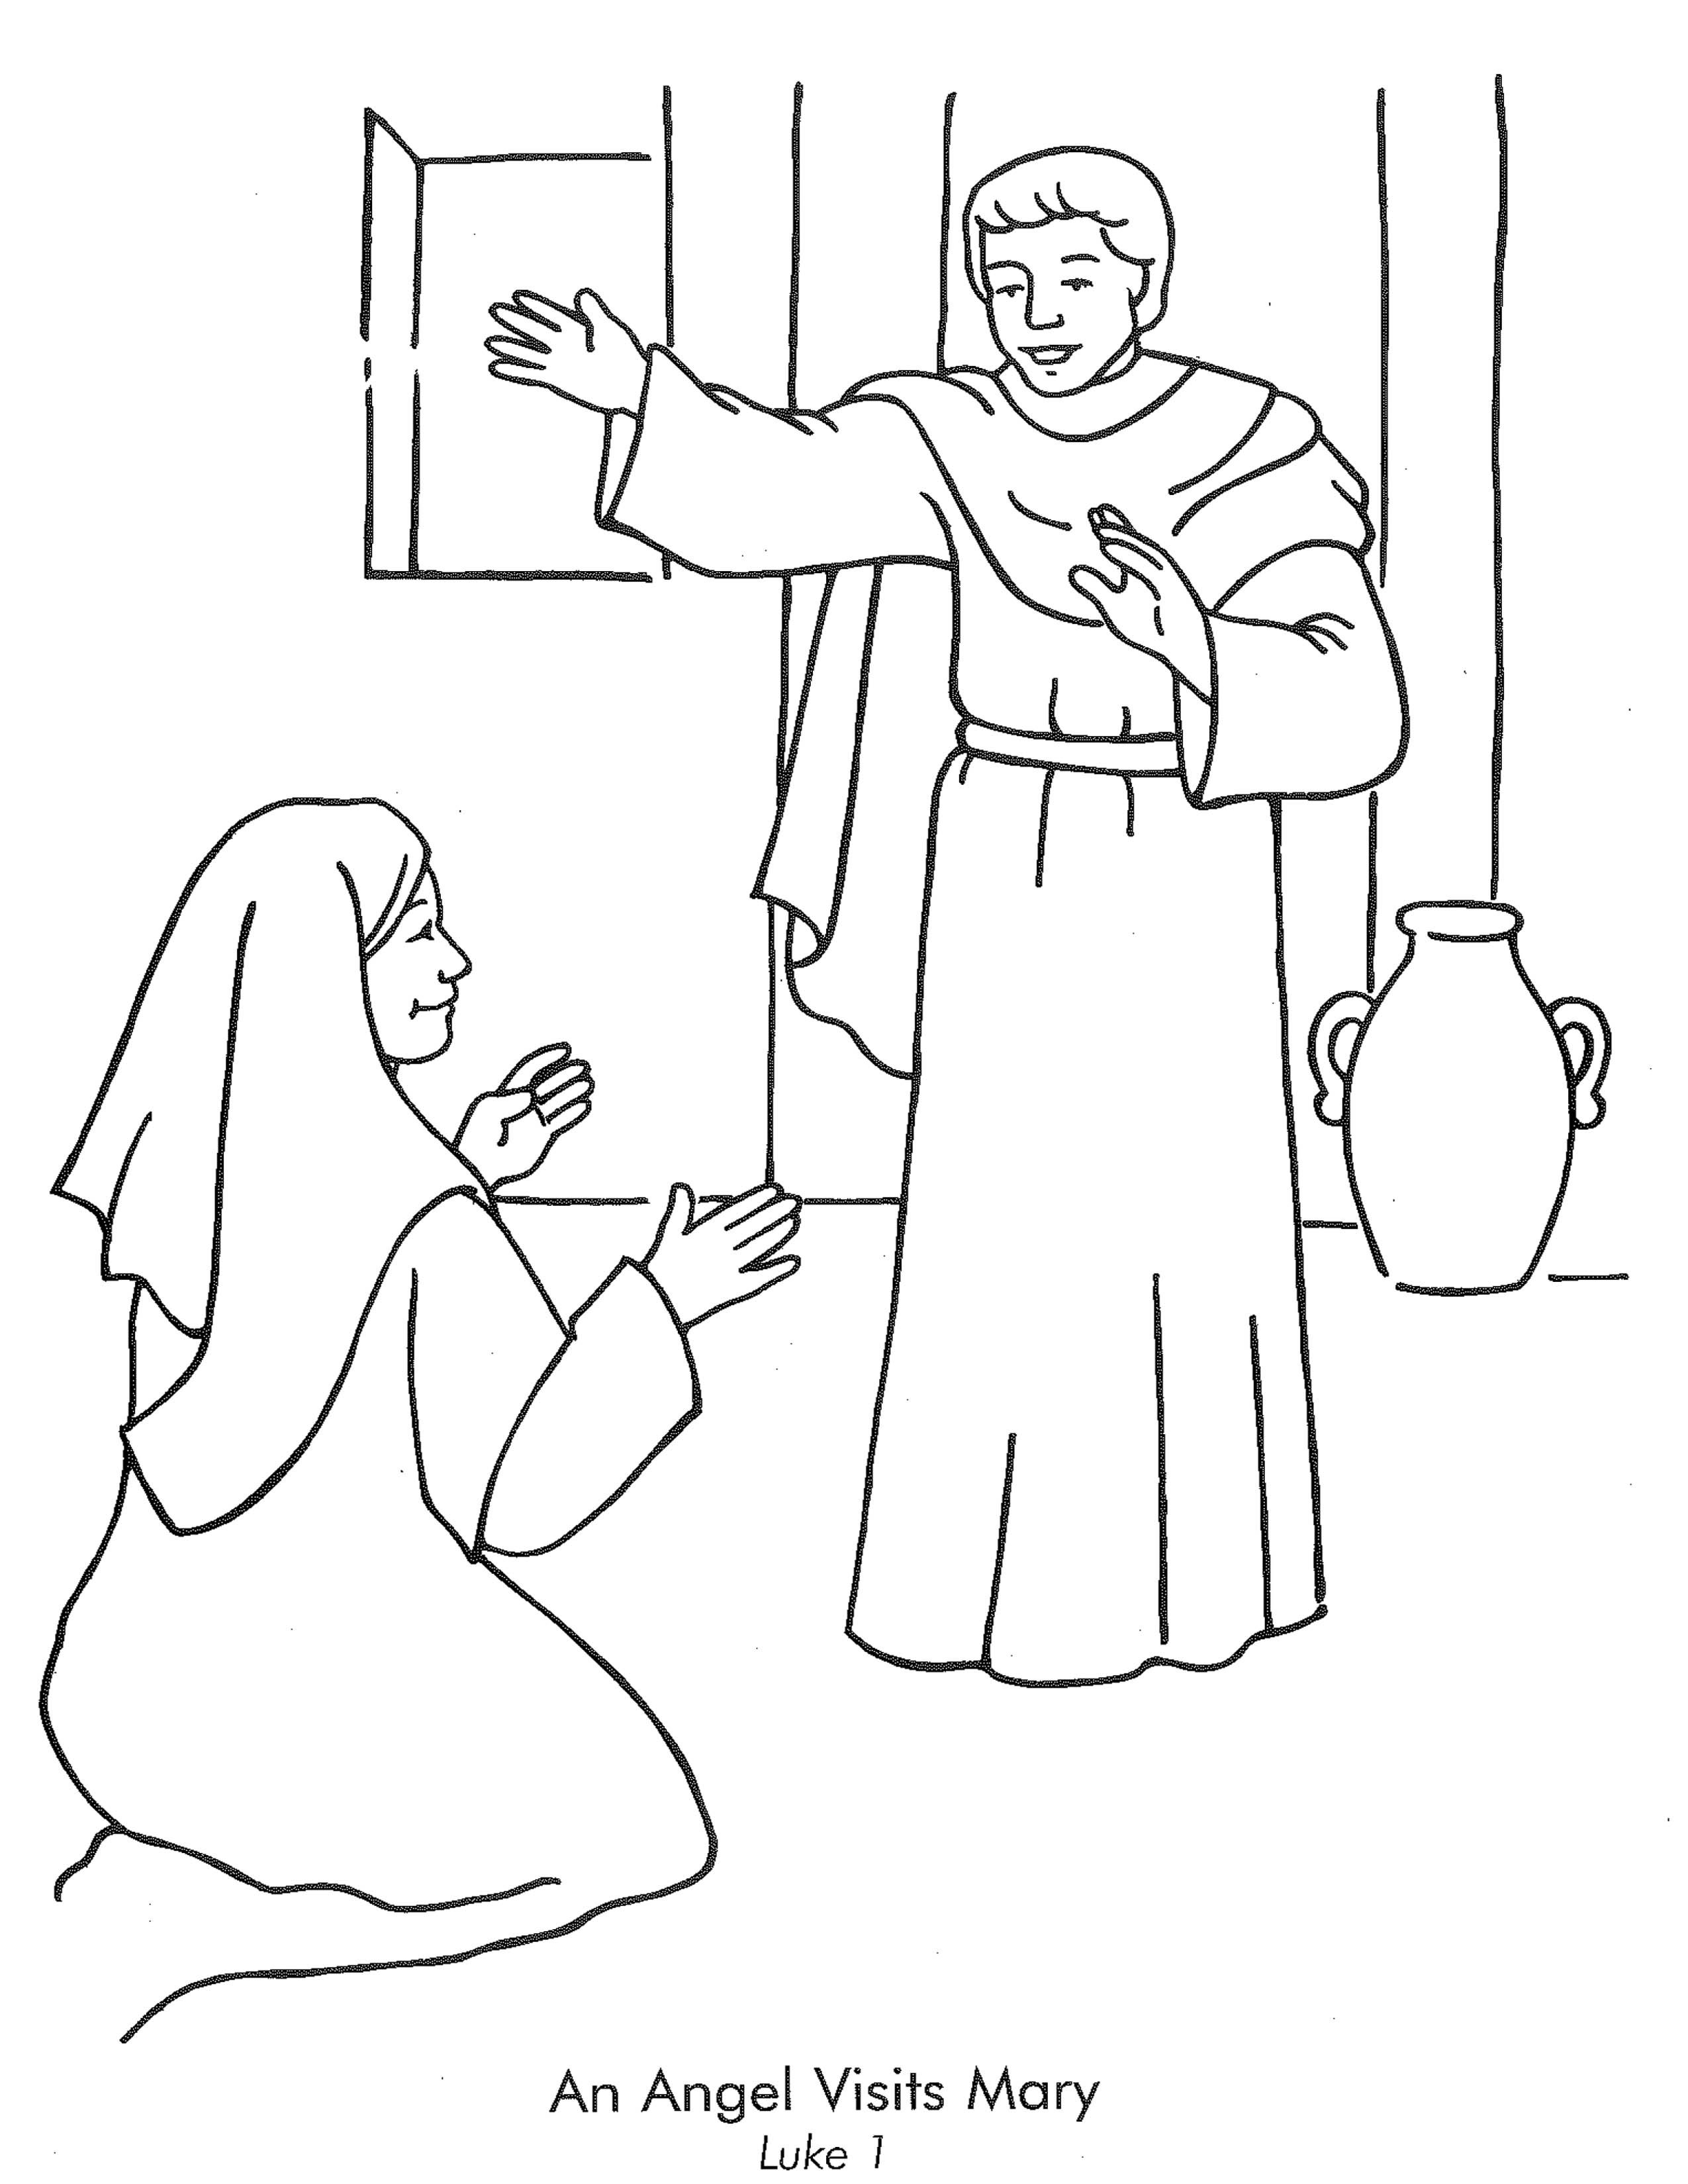 Coloring Pages Angel Gabriel Coloring Page biblical images of angel announcement to mary google search search